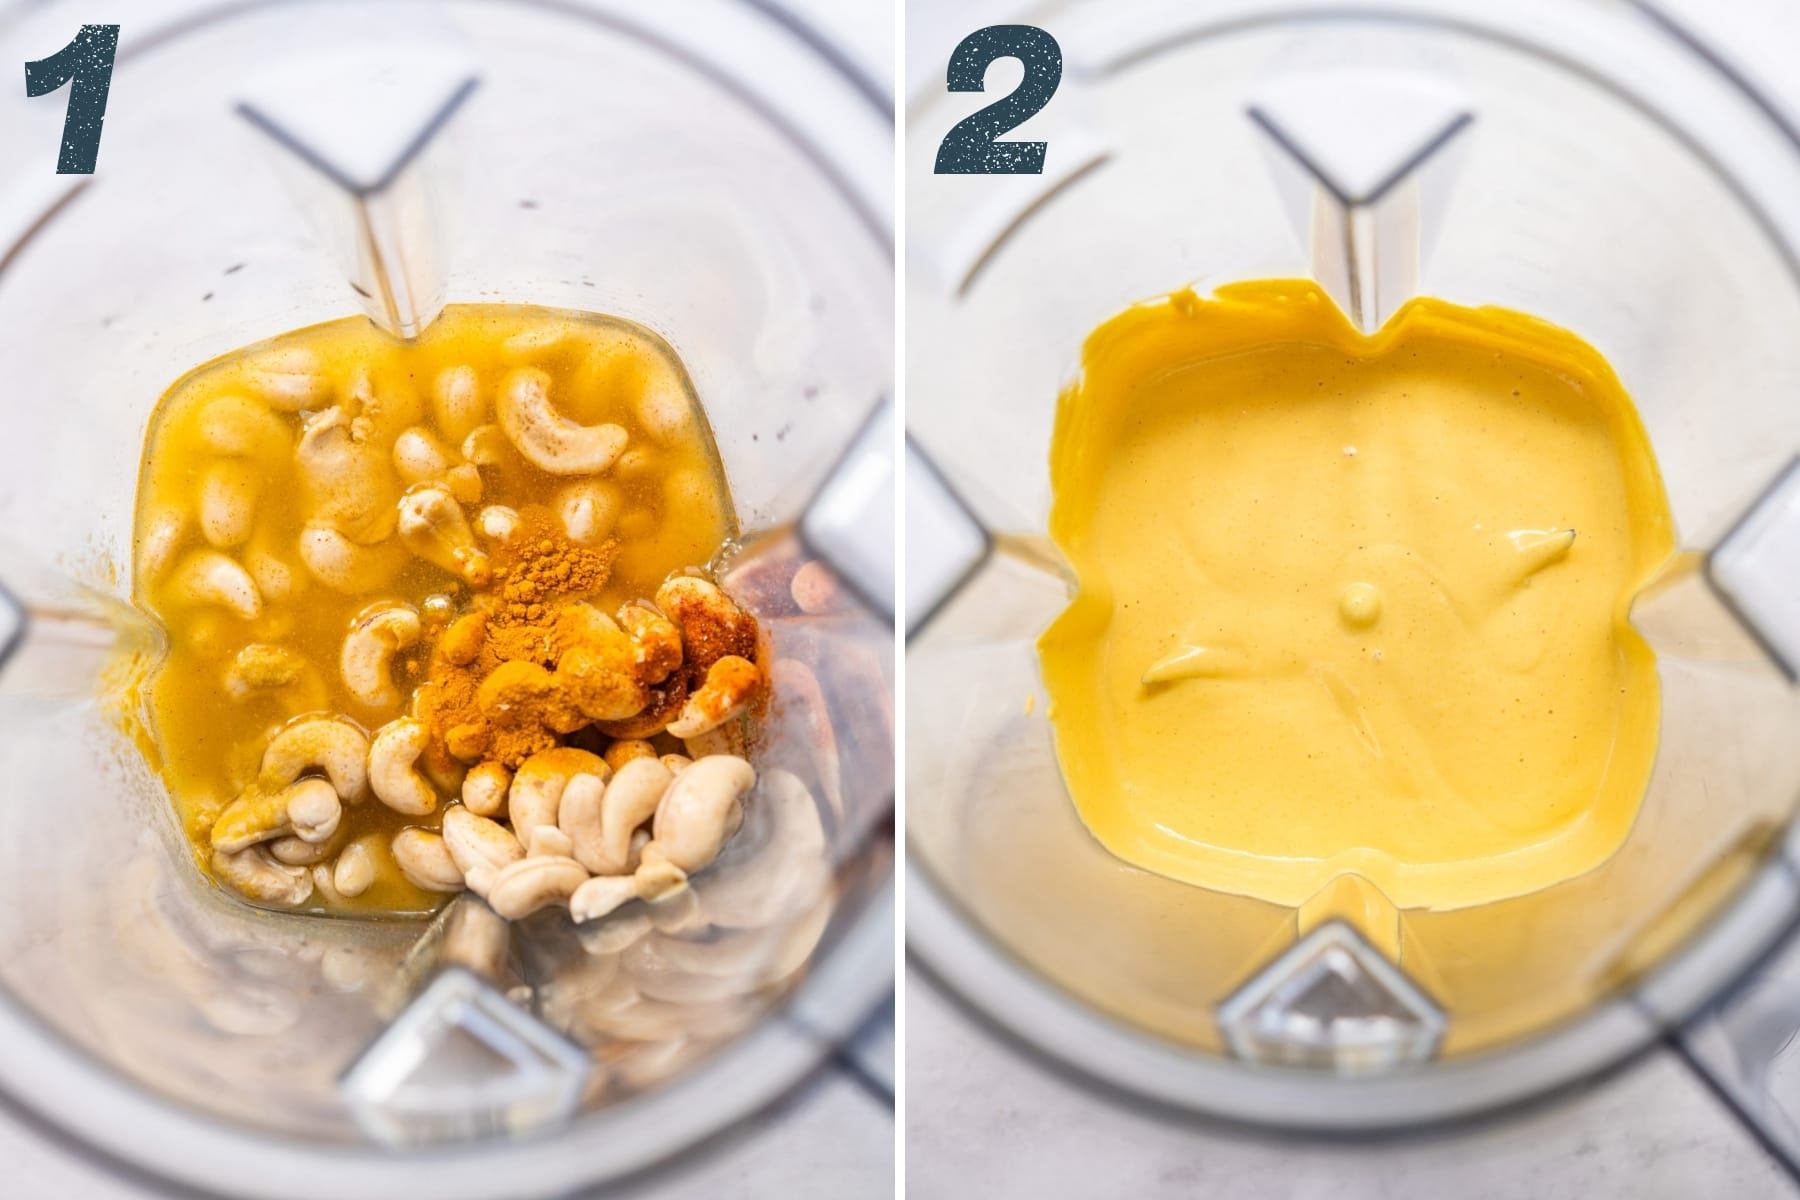 before and after blending ingredients for vegan hollandaise sauce.